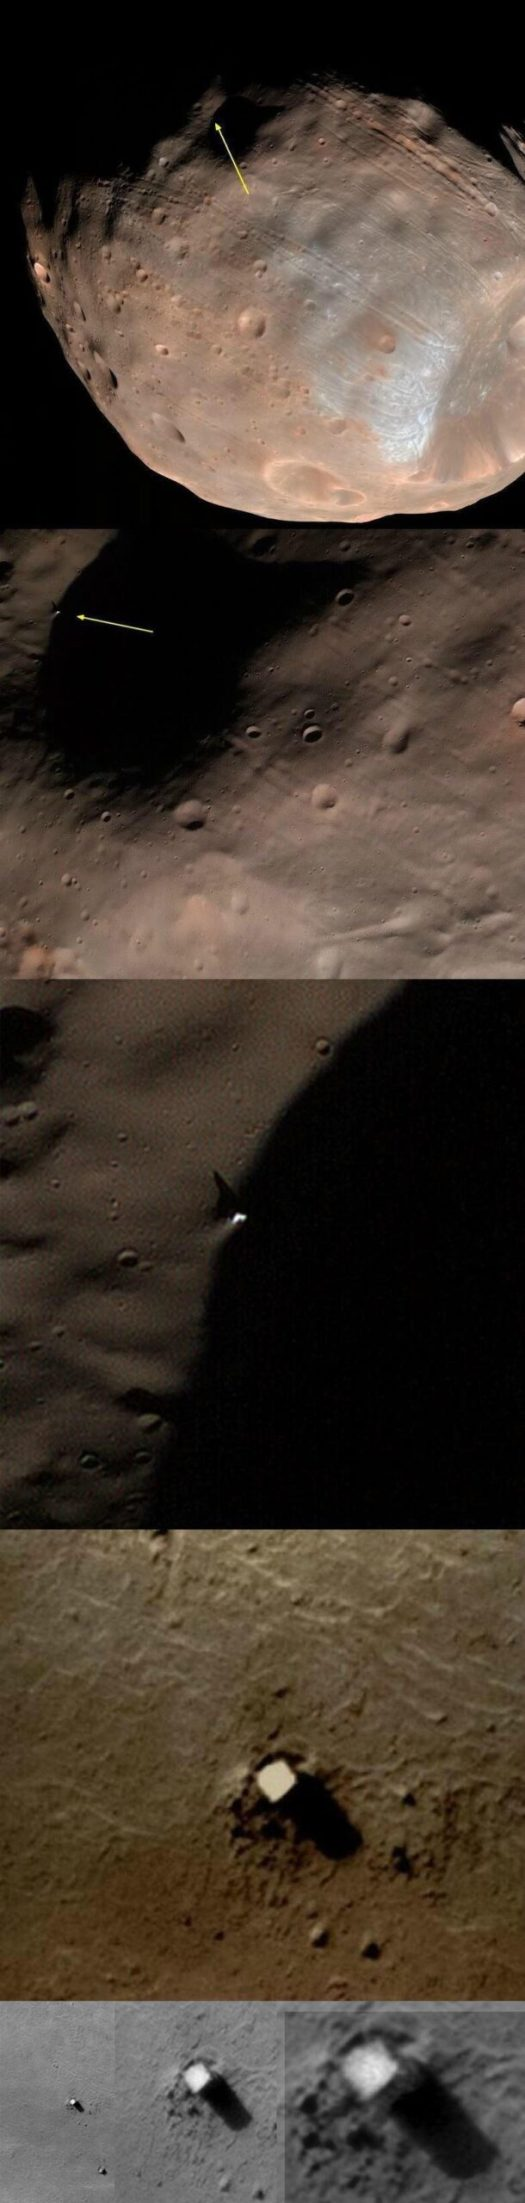 High Resolution imagery of the monolith on the planet Phobos